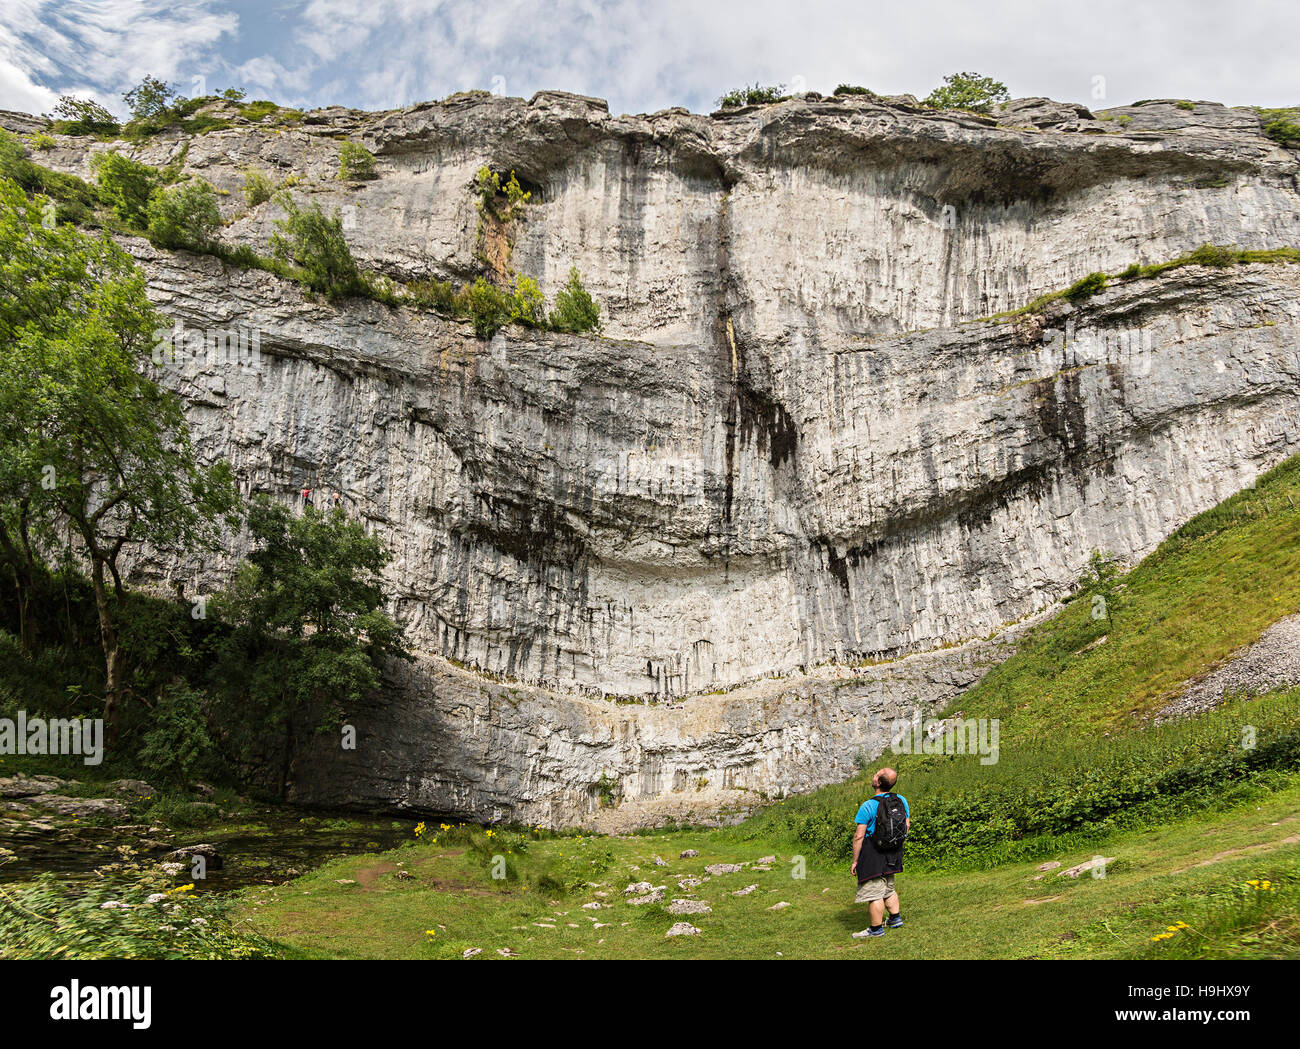 Malham Cove, Yorkshire Dales, UK - Stock Image